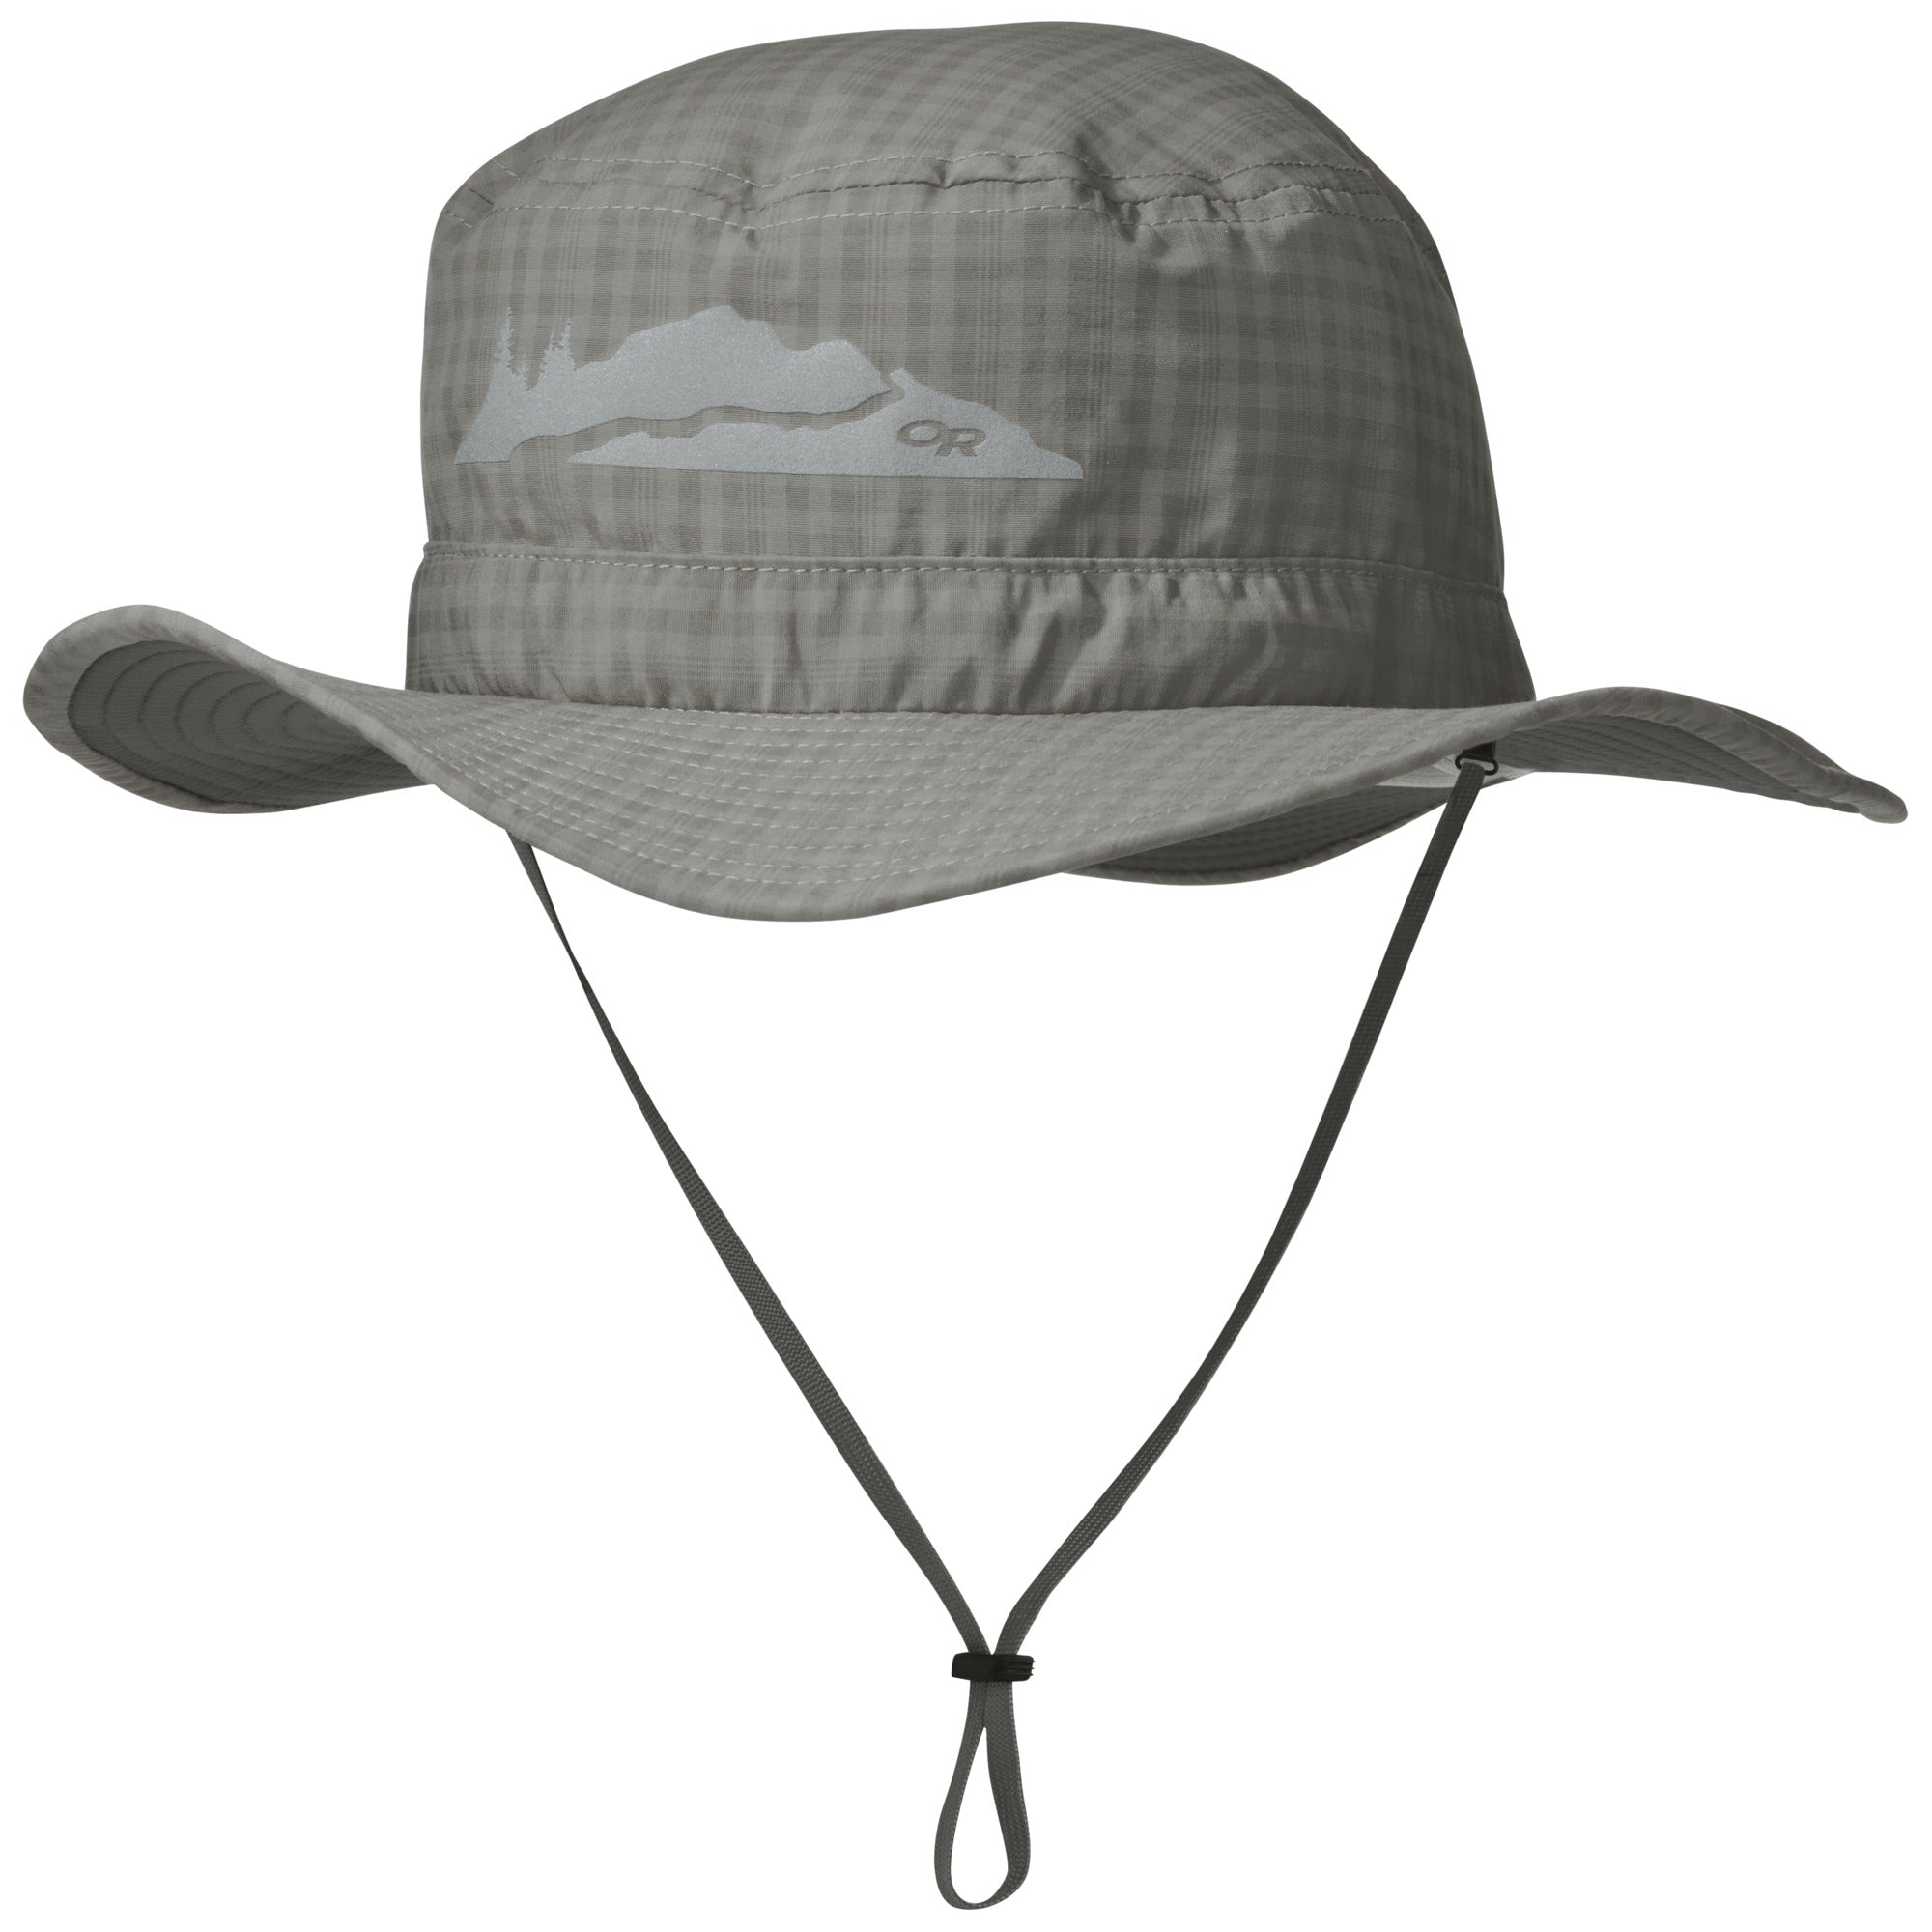 6b1c7b32bcc Outdoor Research Kid s Helios Sun Hat